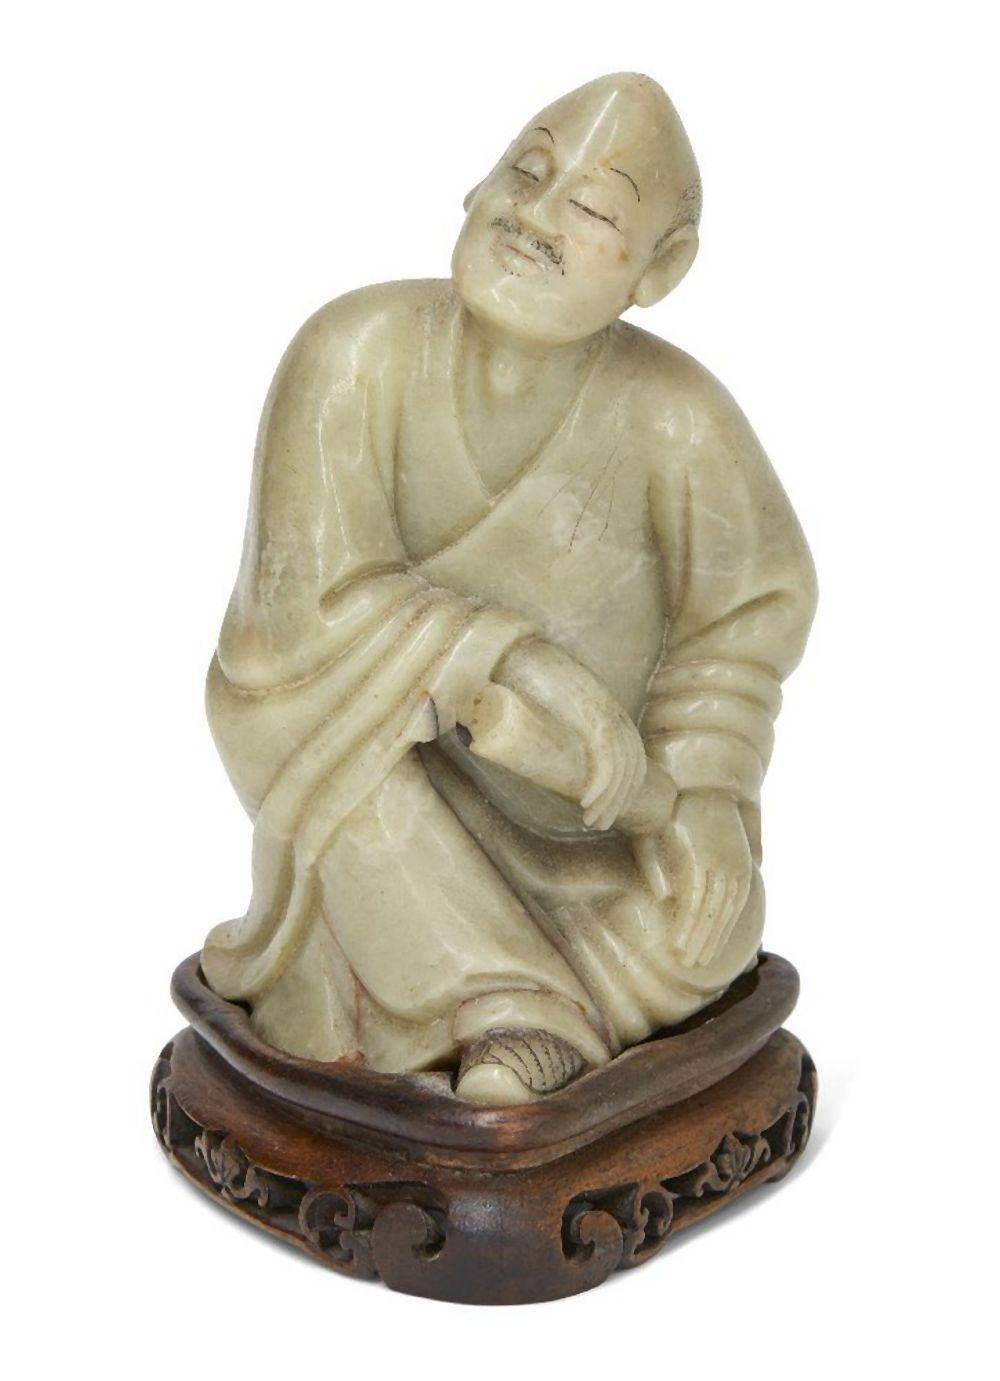 A Chinese soapstone carving of Luohan, 19th century, carved in a relaxed seated position with long f